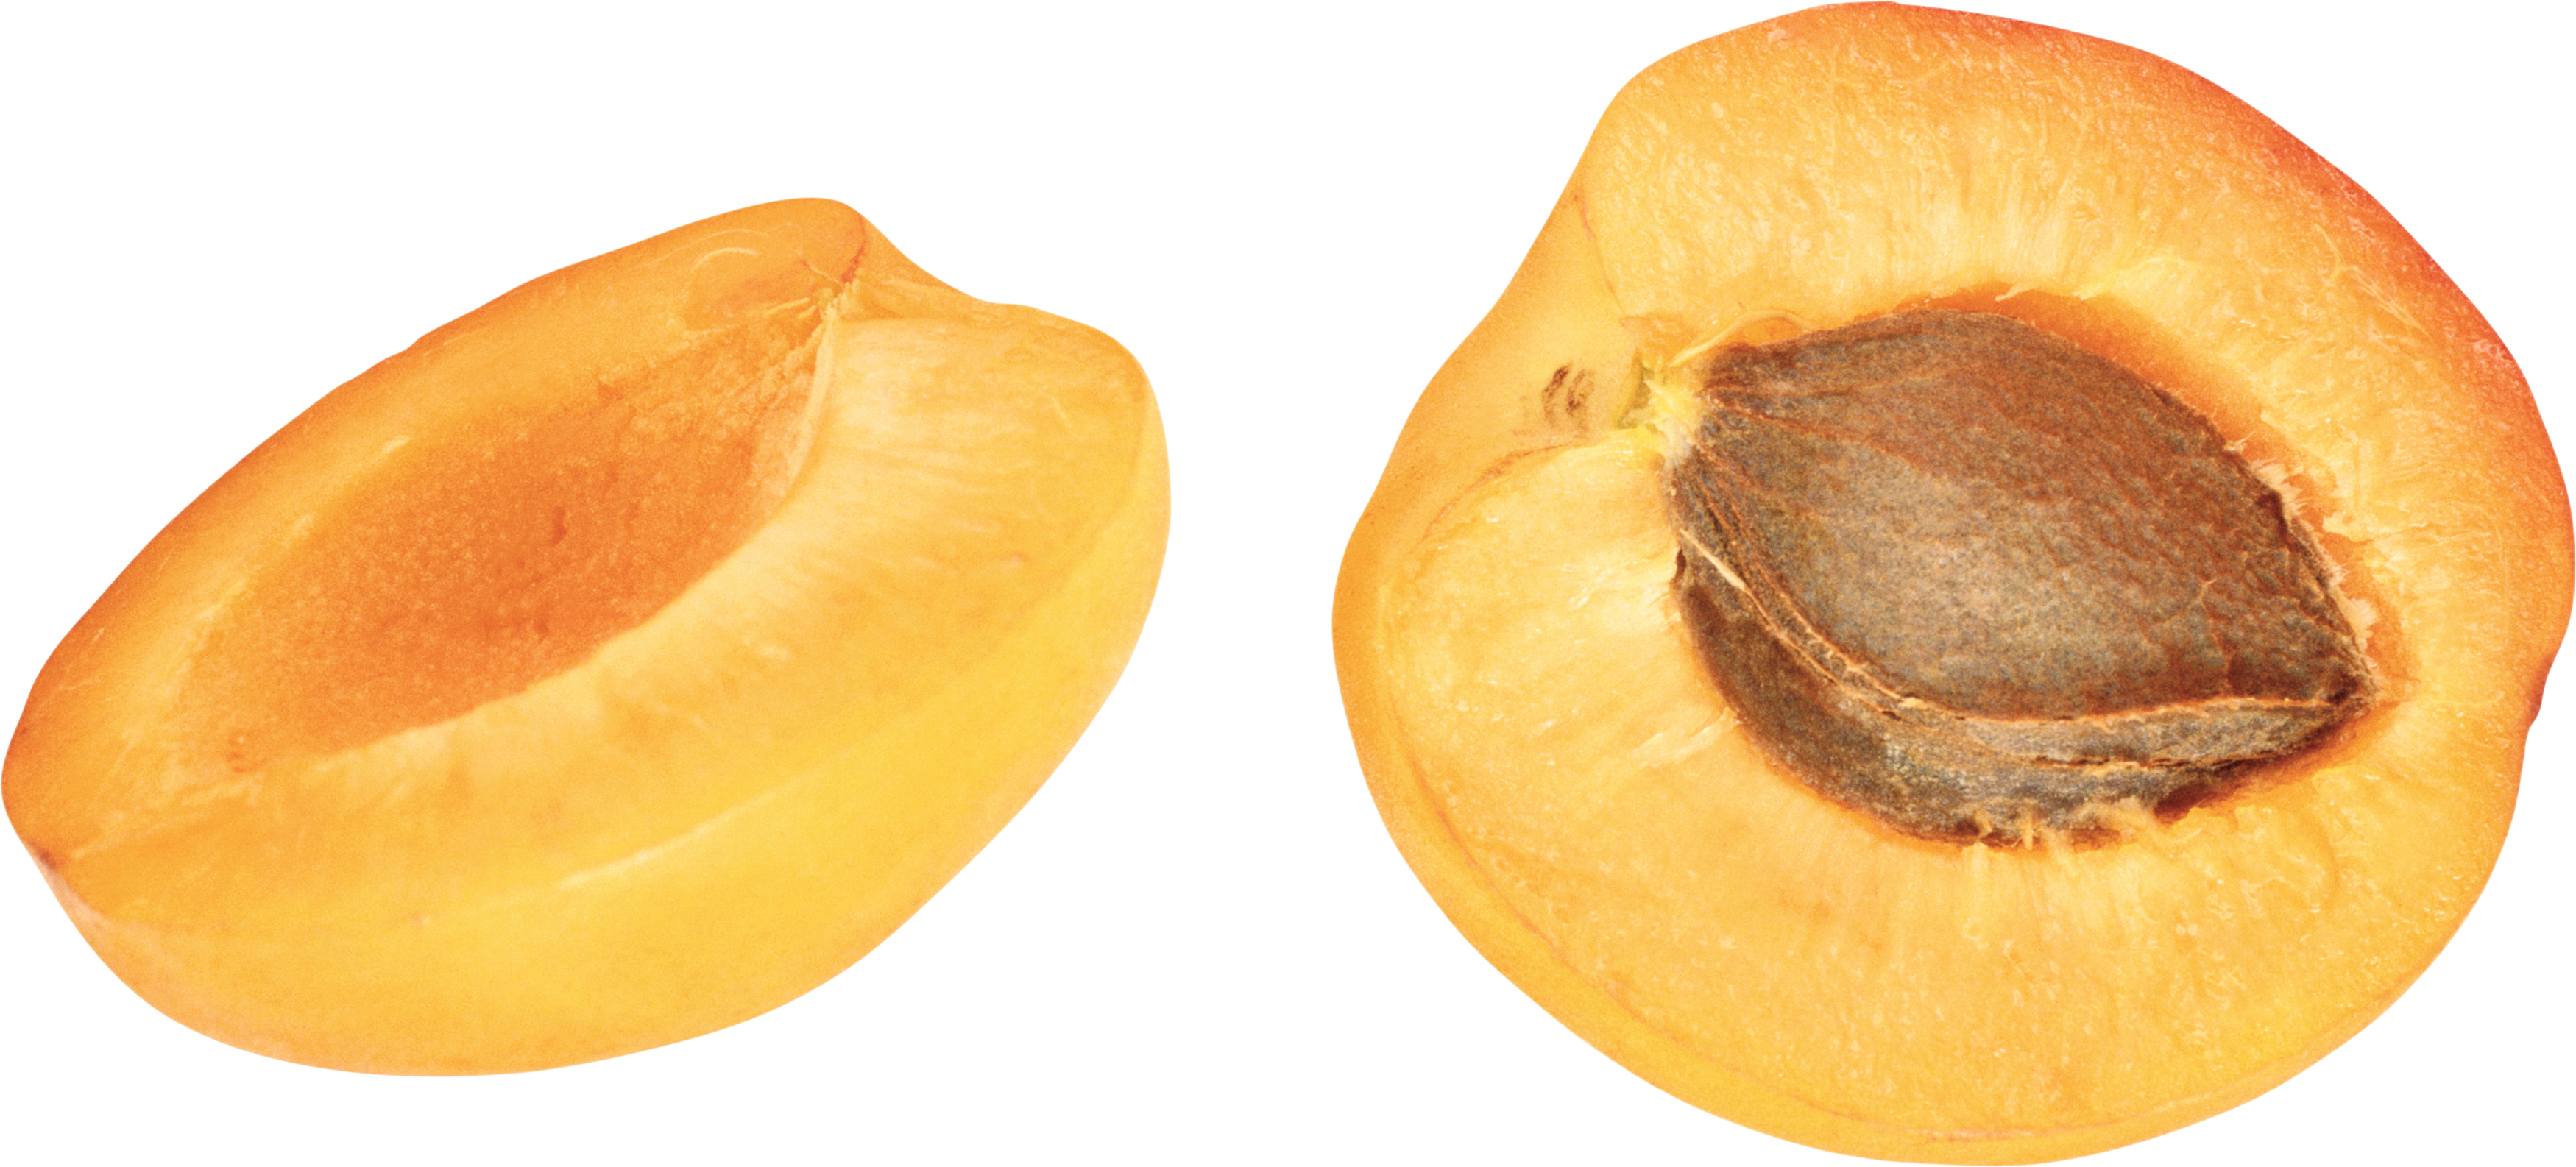 Apricot Slice Transparent PNG, Orange Apricots 27224